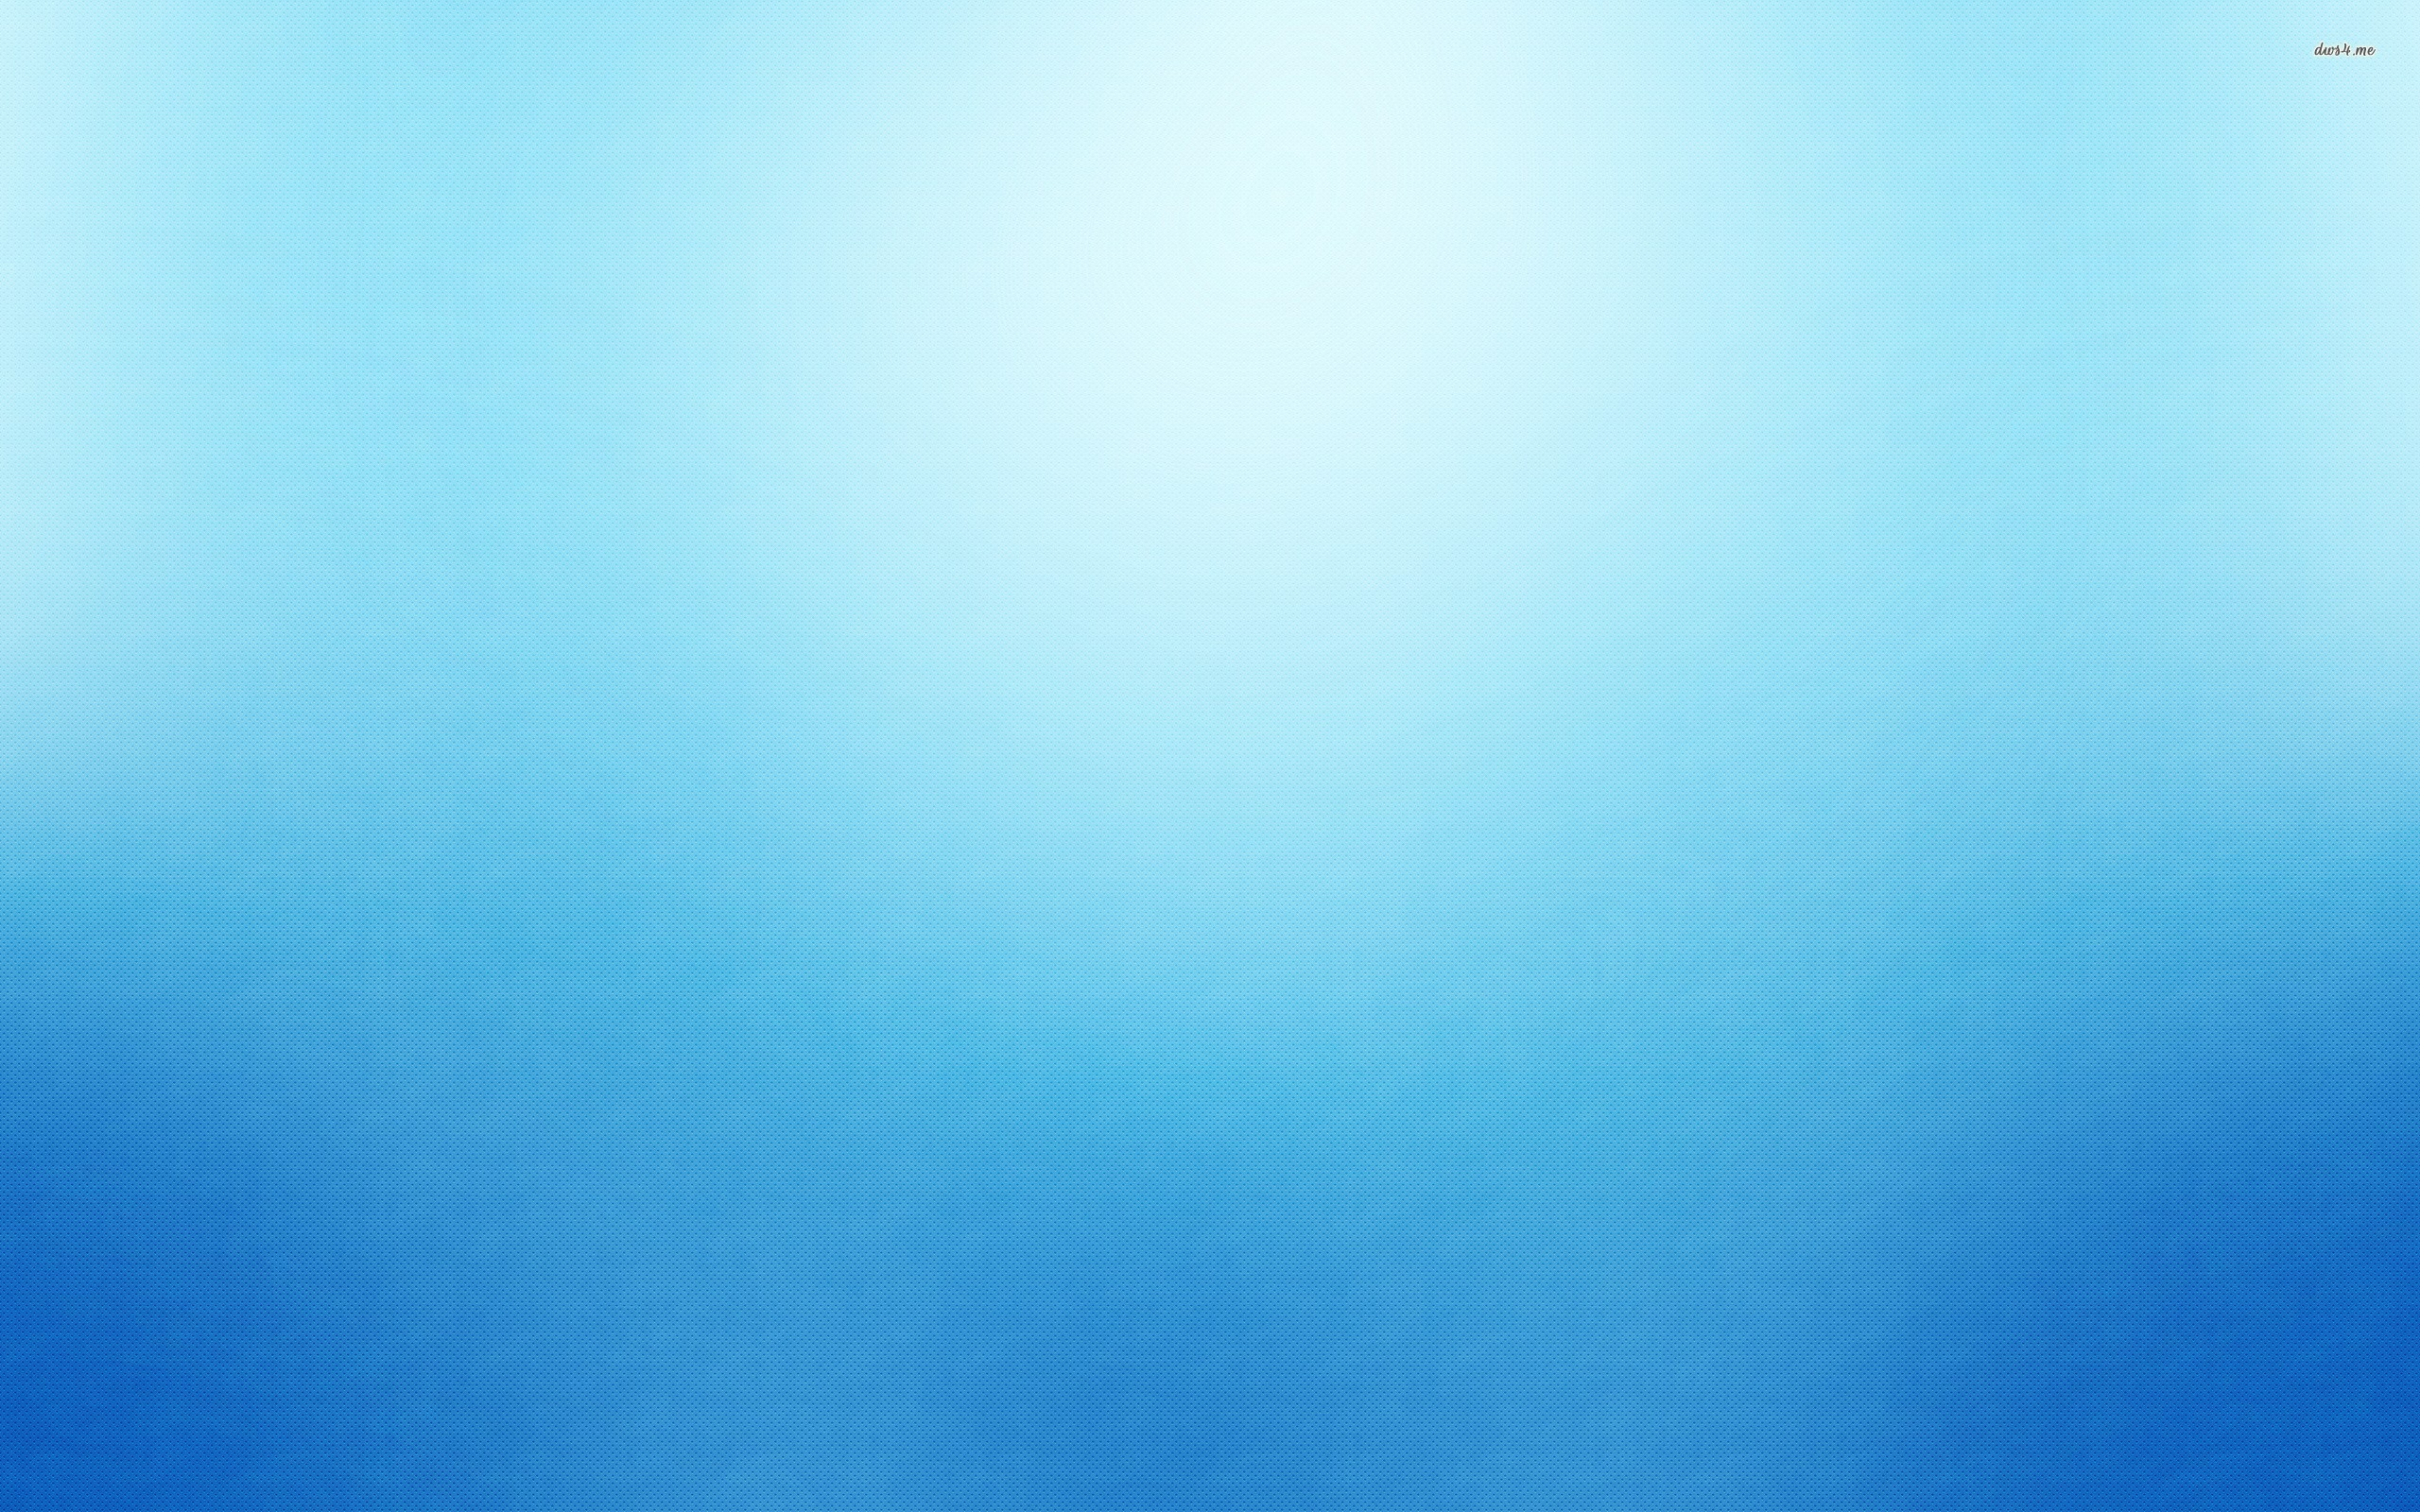 Light blue texture wallpaper – Abstract wallpapers – #21390